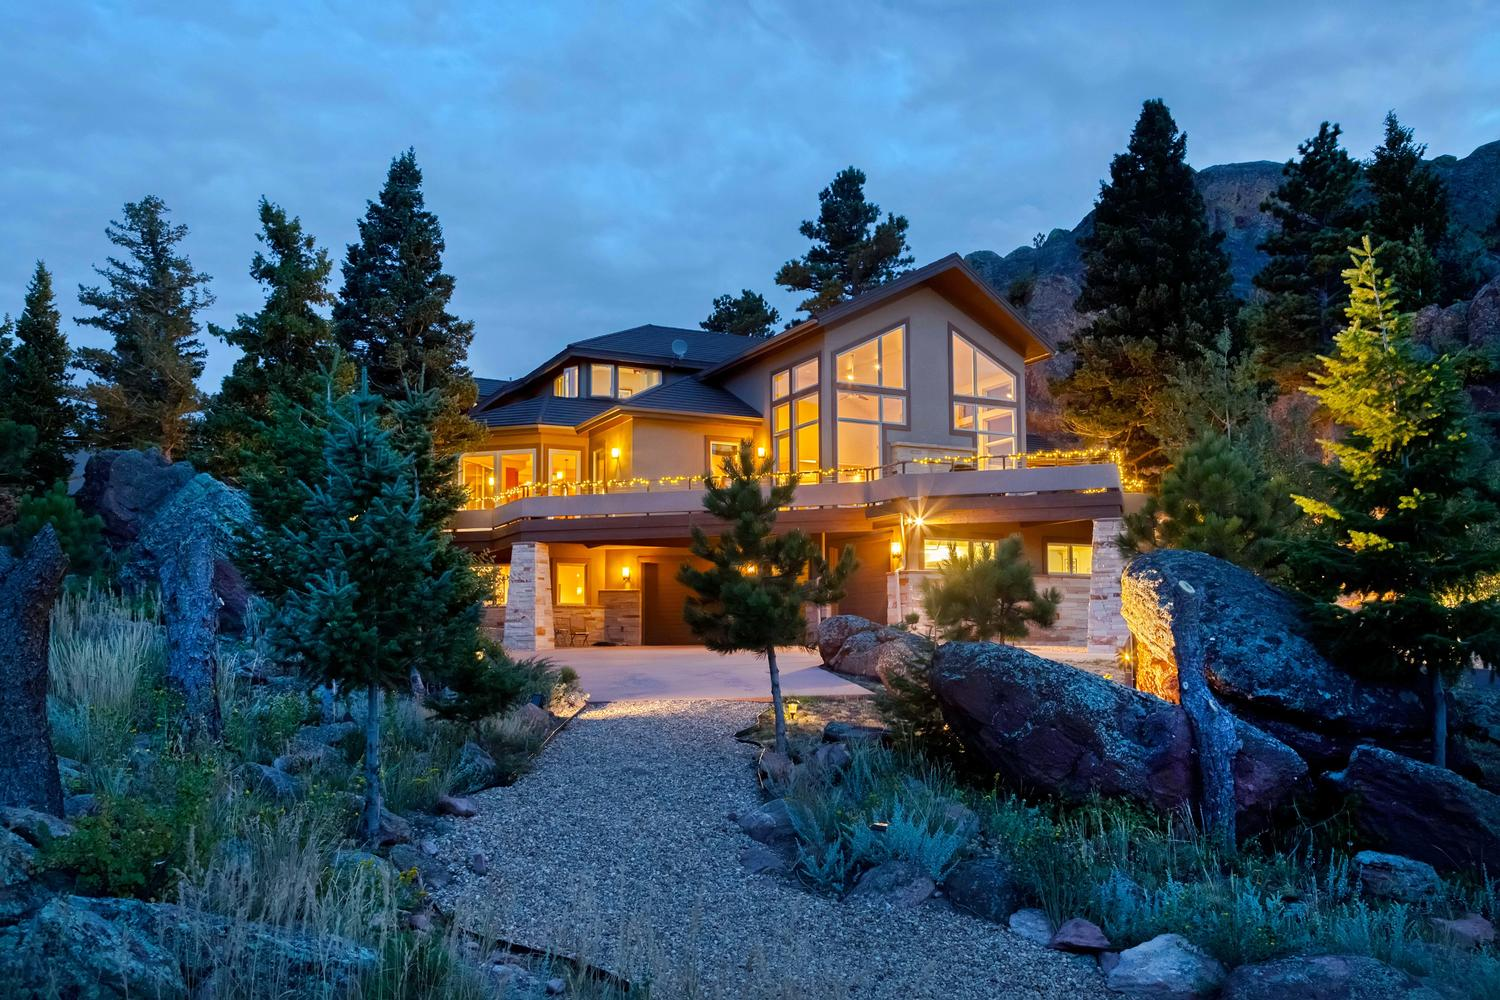 Single Family Home for Sale at Peaceful Custom Home 9051 Eastridge Road Golden, Colorado, 80403 United States